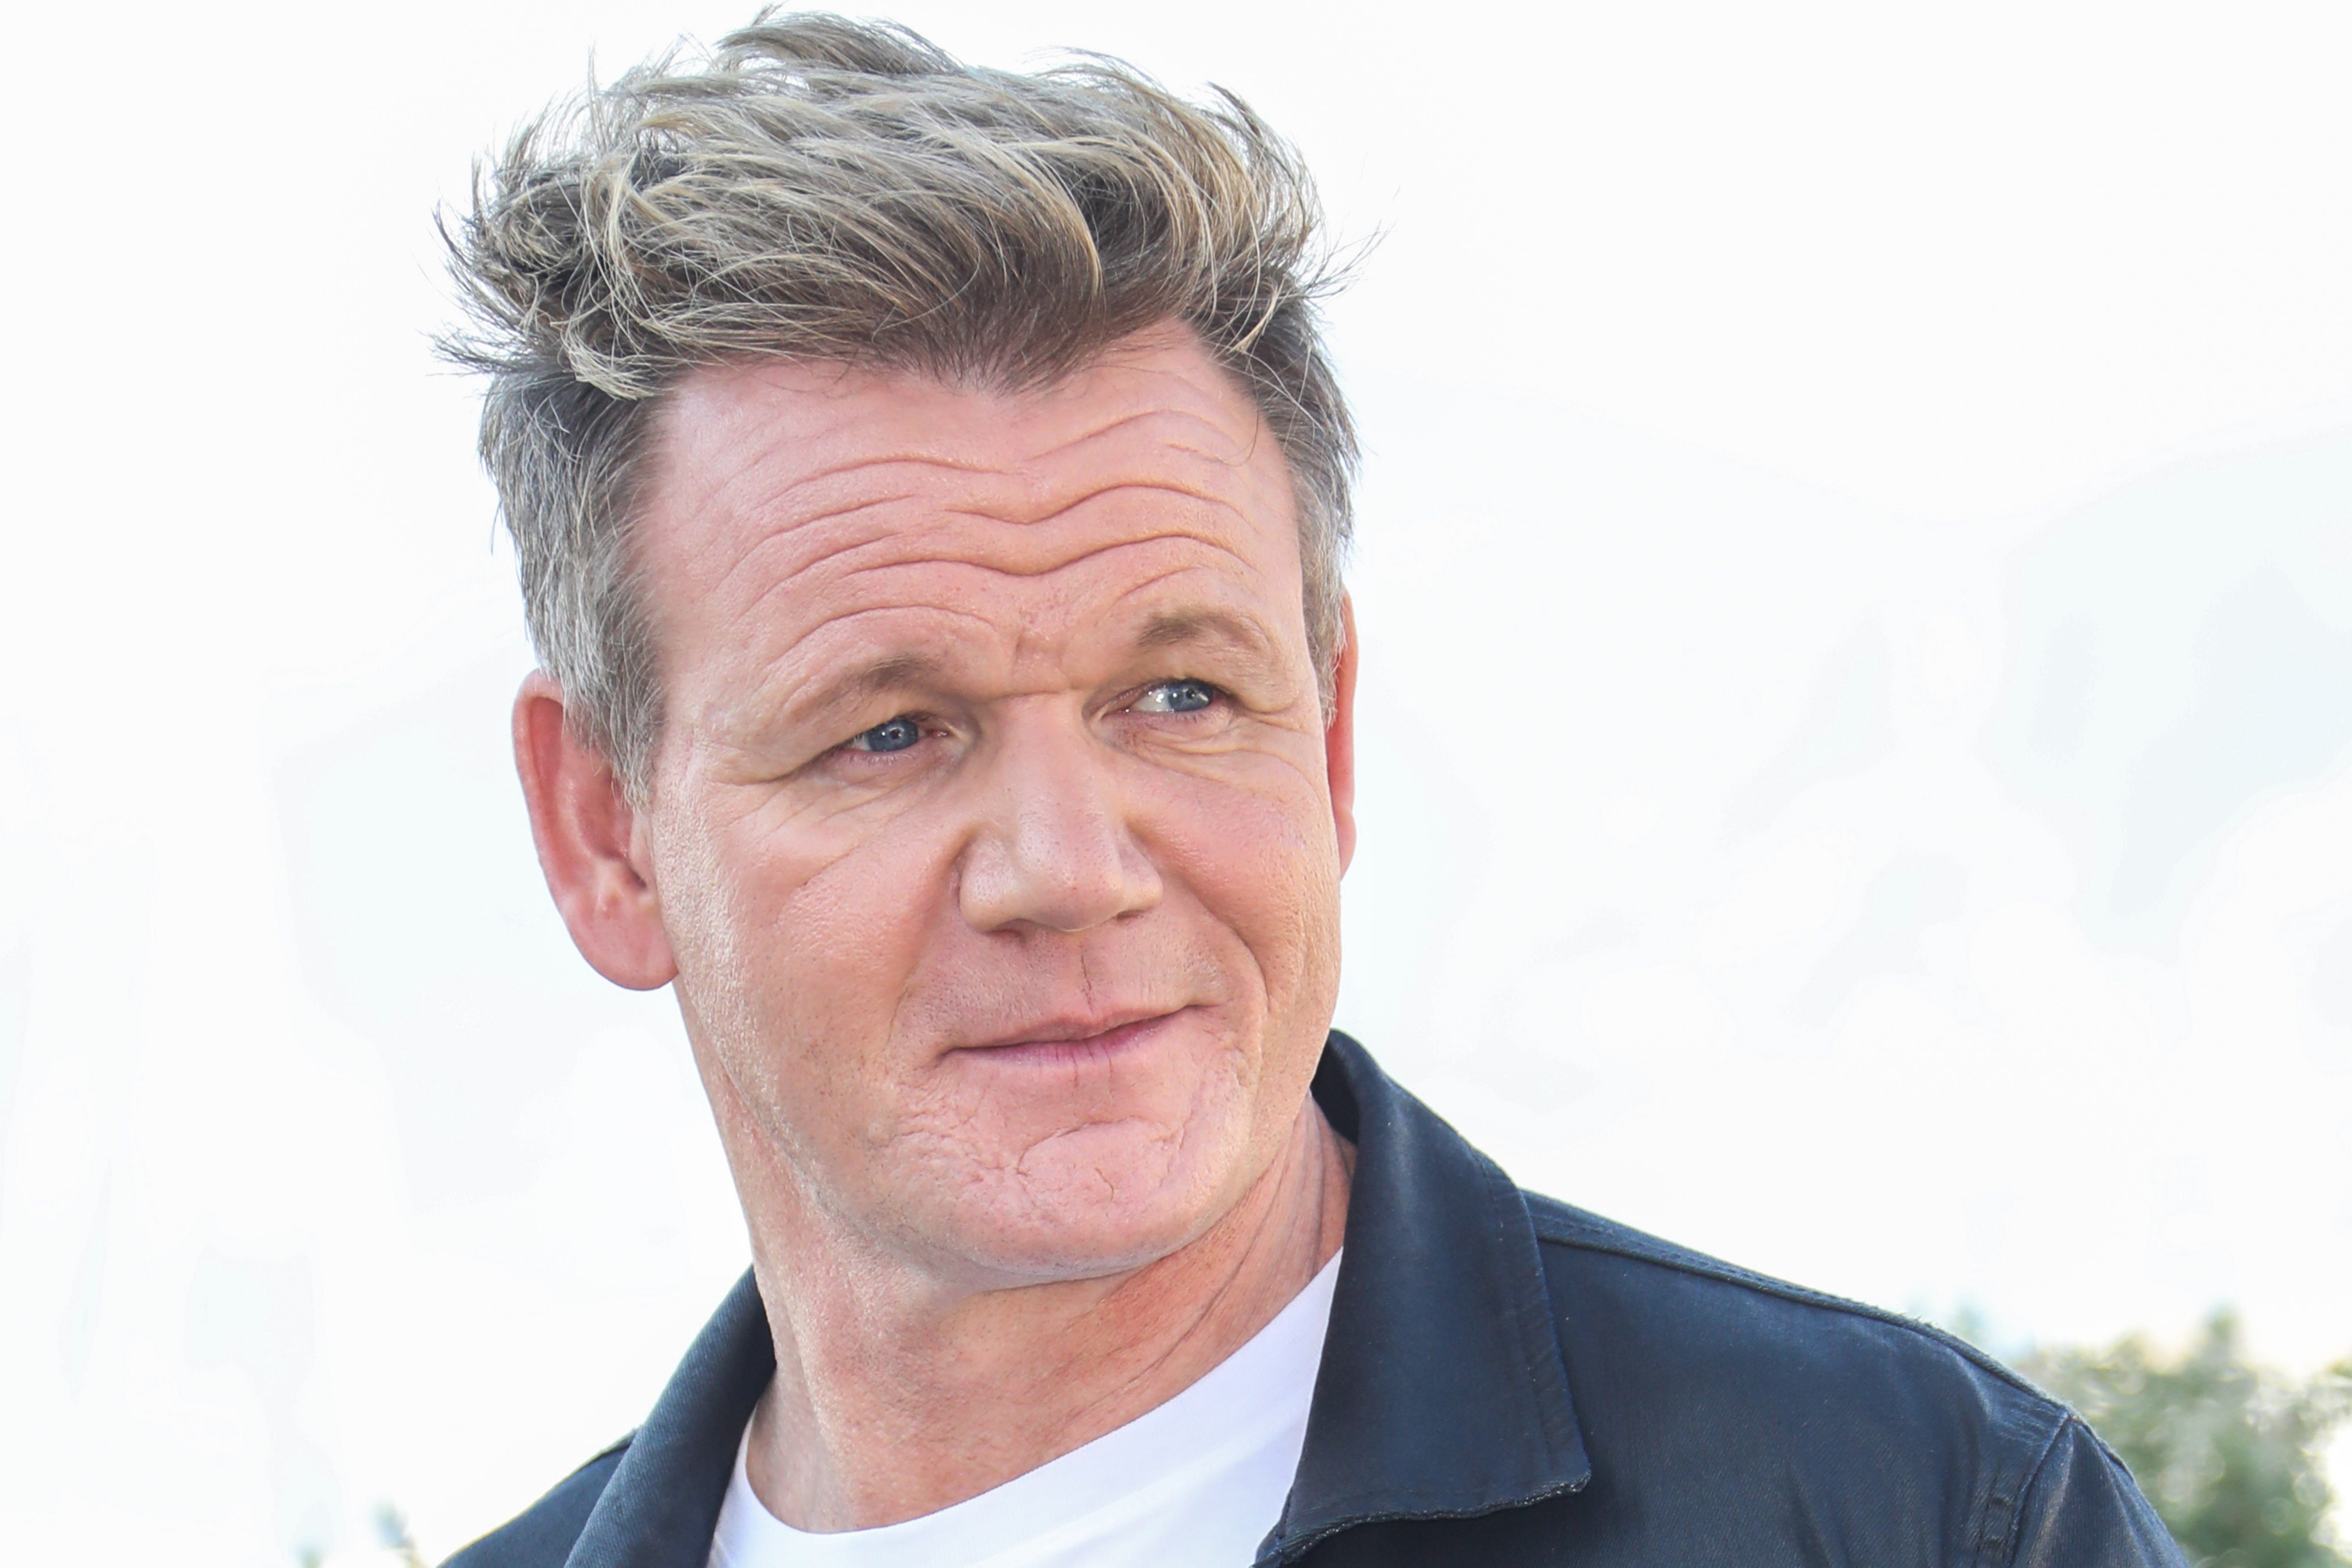 Gordon Ramsay Is Done With These 3 Popular Food Trends